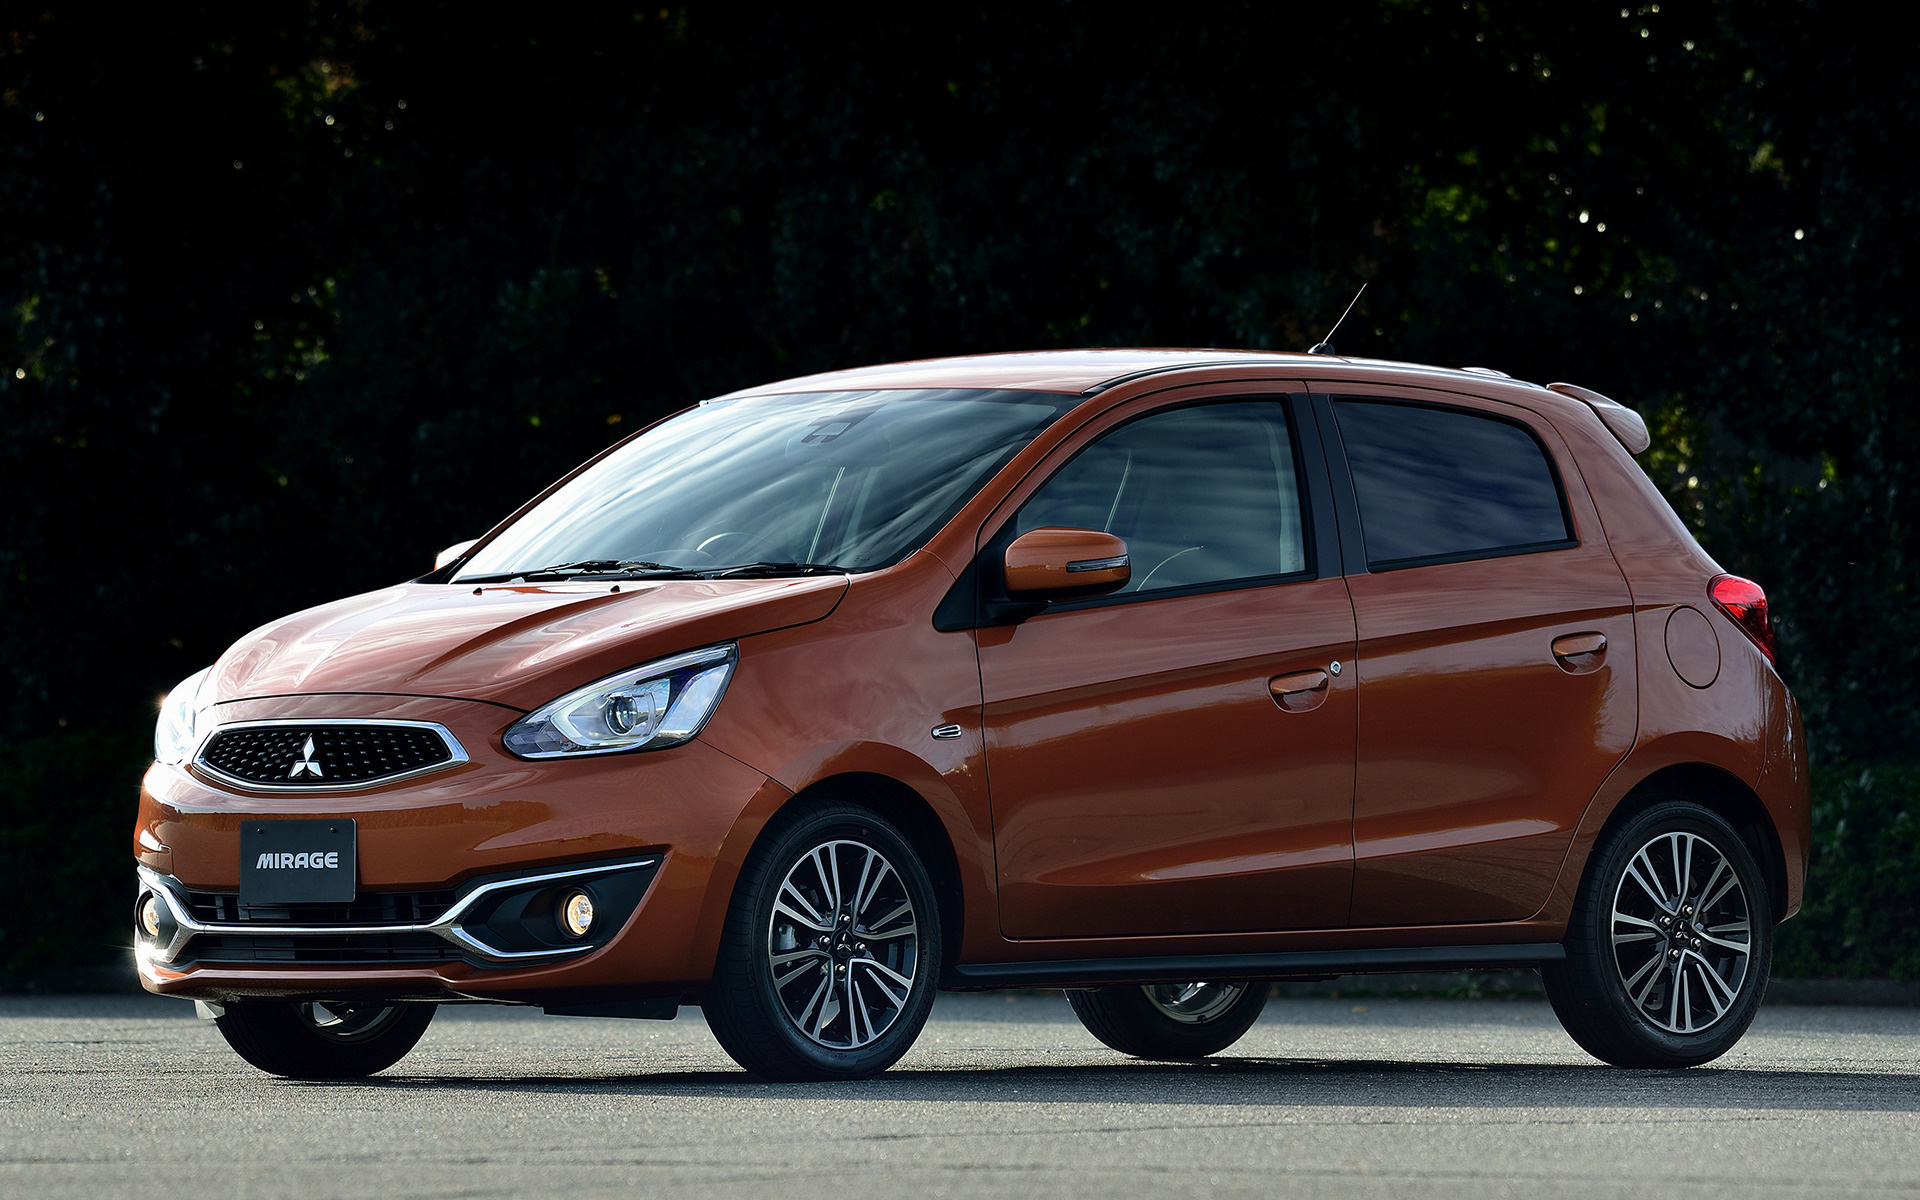 Mitsubishi Mirage 2016 >> 2016 Mitsubishi Mirage - Wallpapers and HD Images | Car Pixel